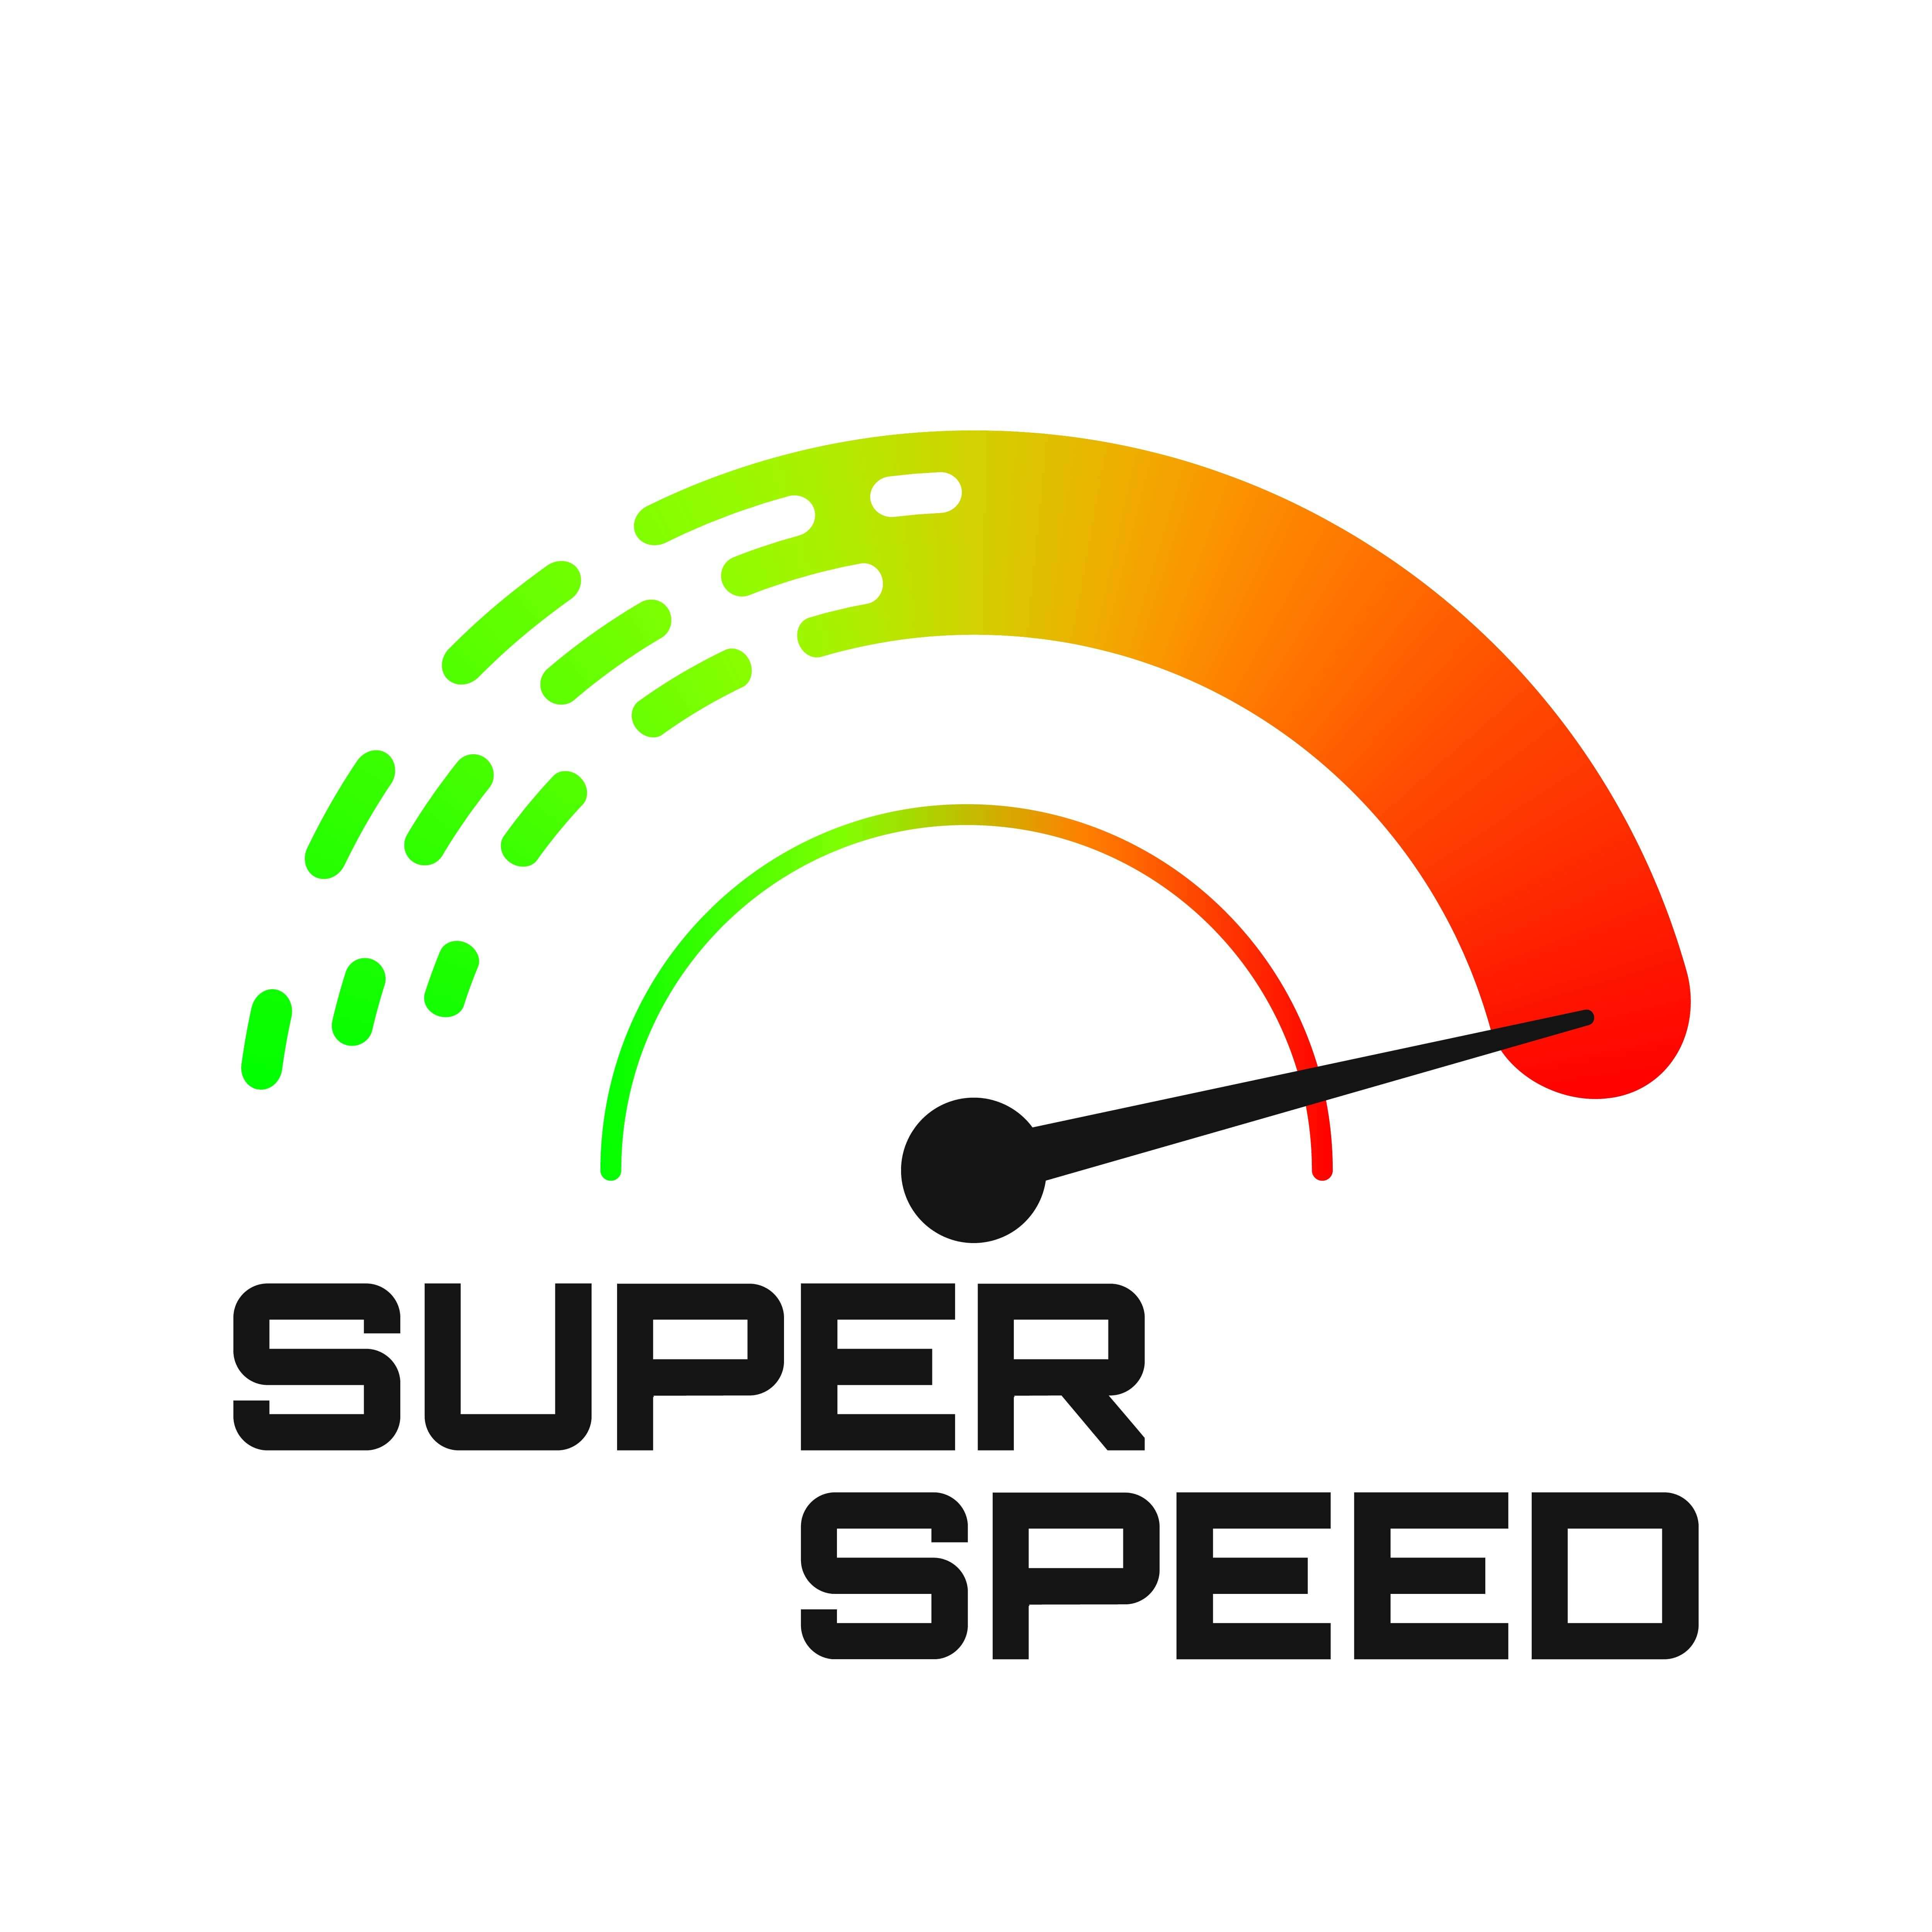 A car speedometer with the arrow showing high speed